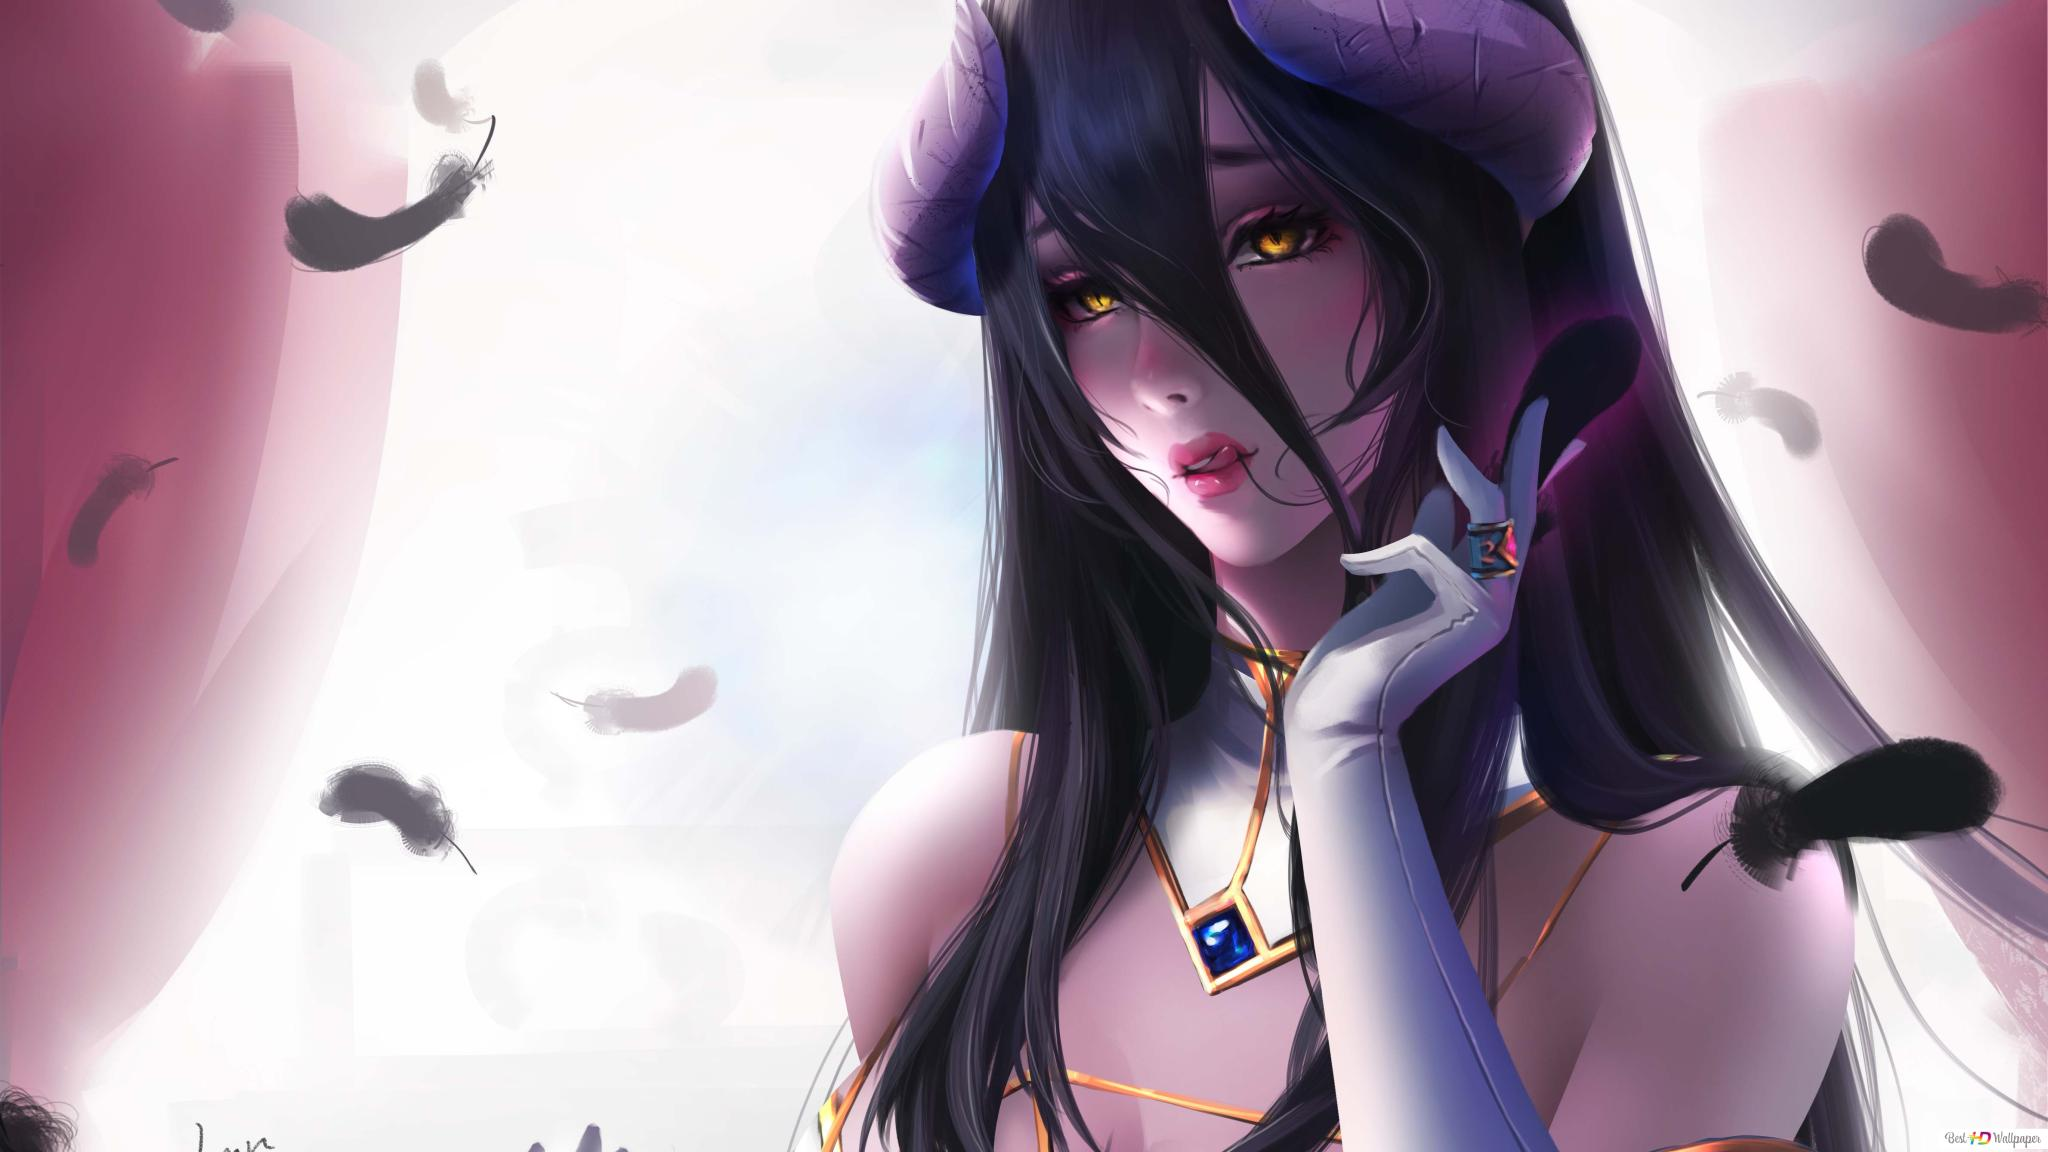 Albedo Floor Guardian Hd Wallpaper Download